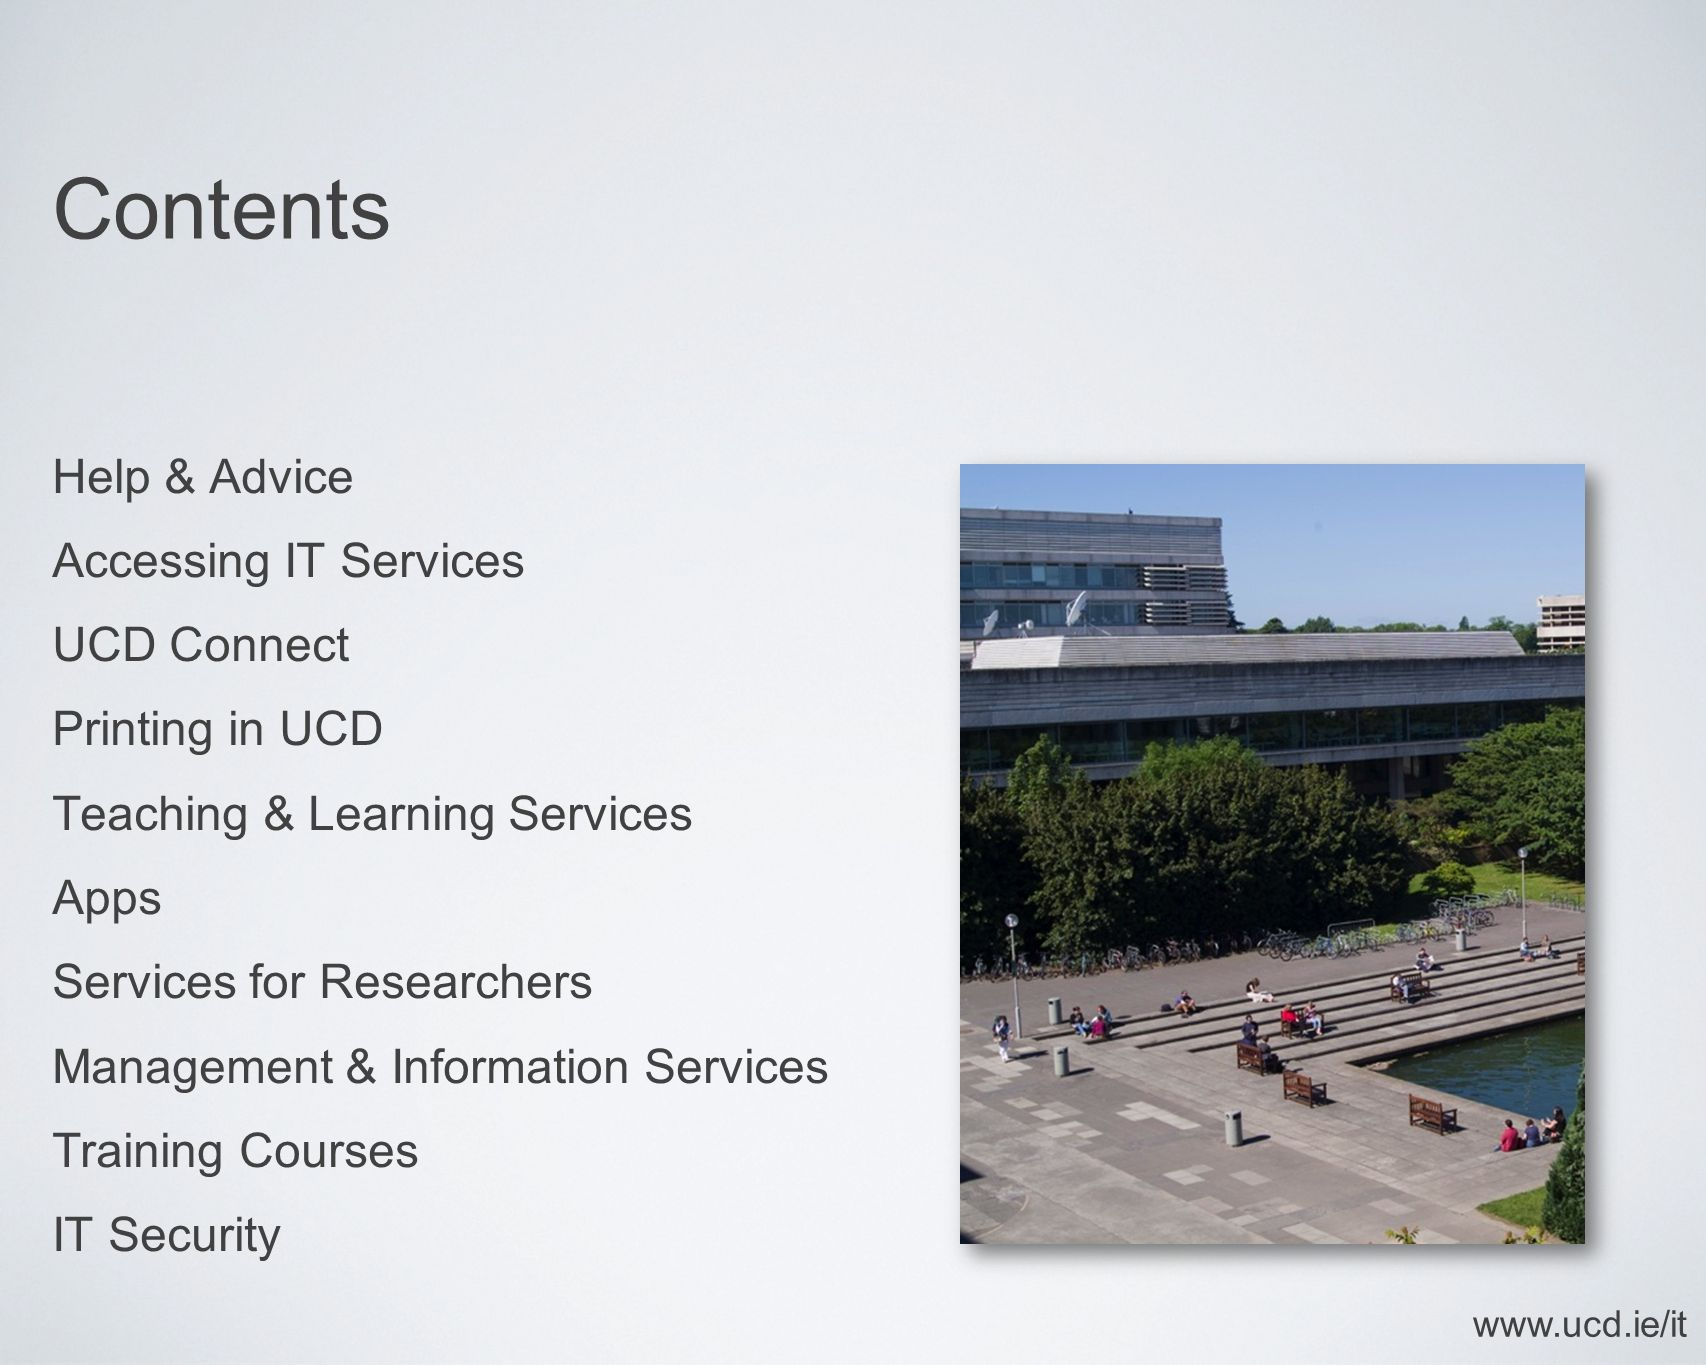 Contents Help & Advice Accessing IT Services UCD Connect Printing in UCD Teaching & Learning Services Apps Services for Researchers Management & Information Services Training Courses IT Security www.ucd.ie/it